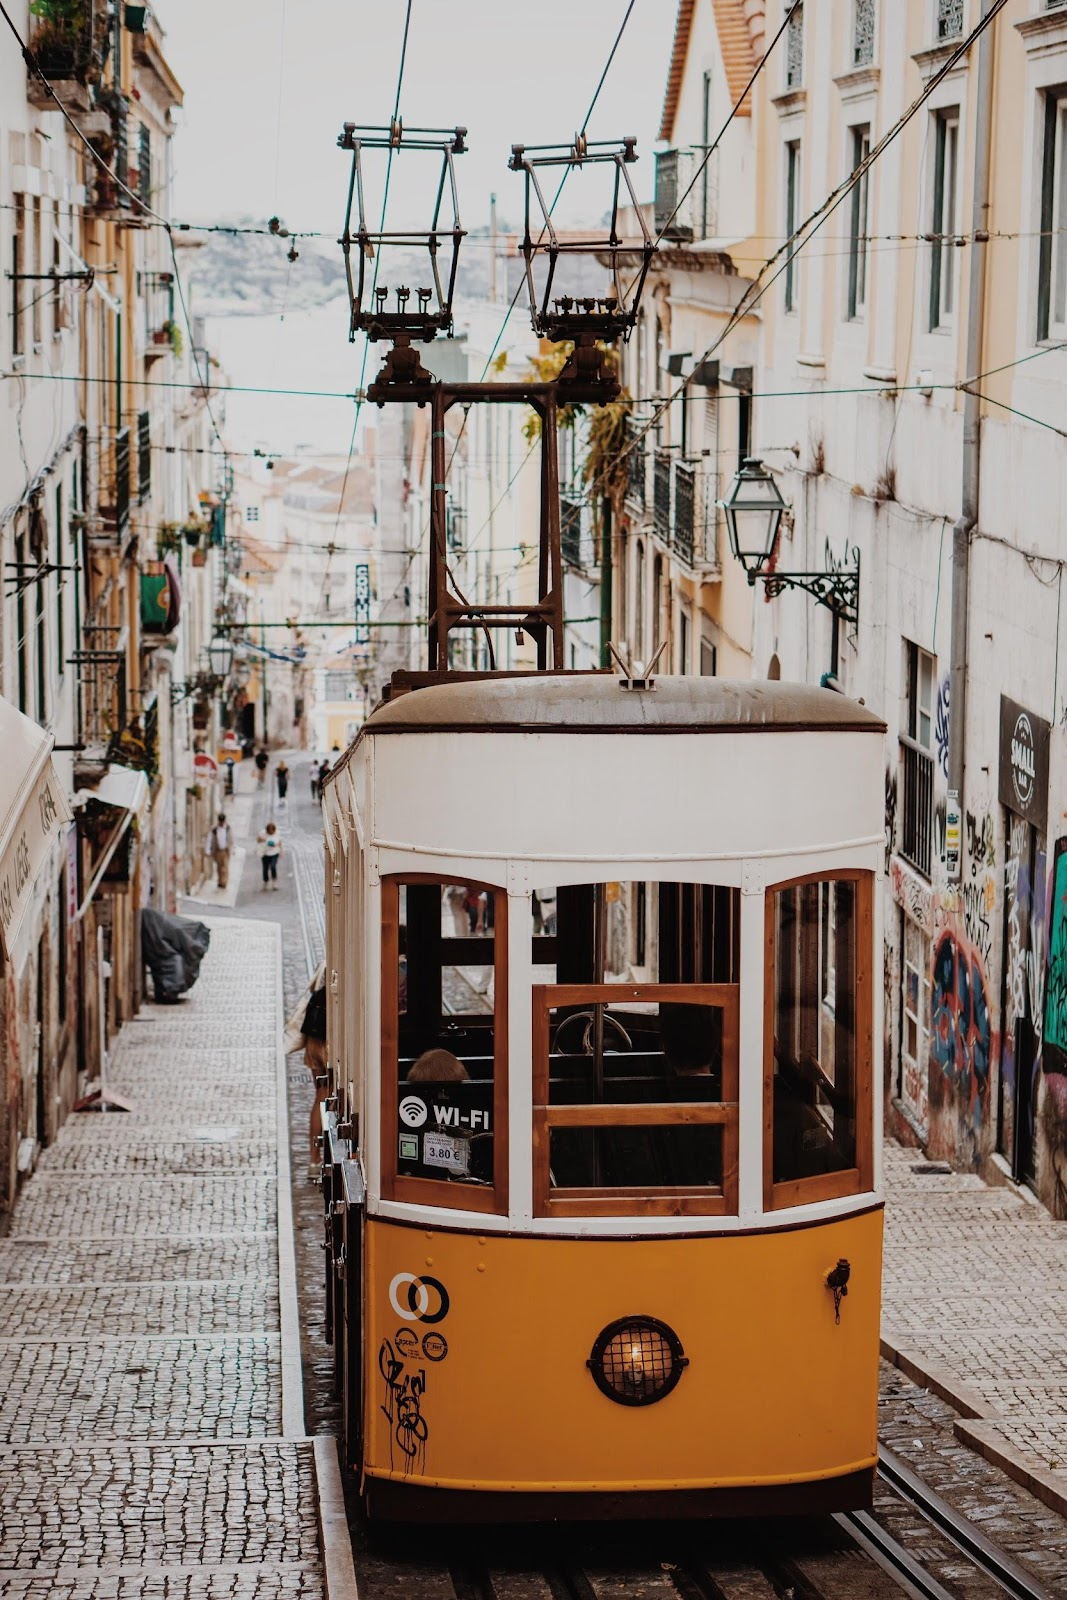 Information about Portugal's digital nomad visa (known as the D7 Passive Income Visa) for remote workers, freelancers and internet entrepreneurs.